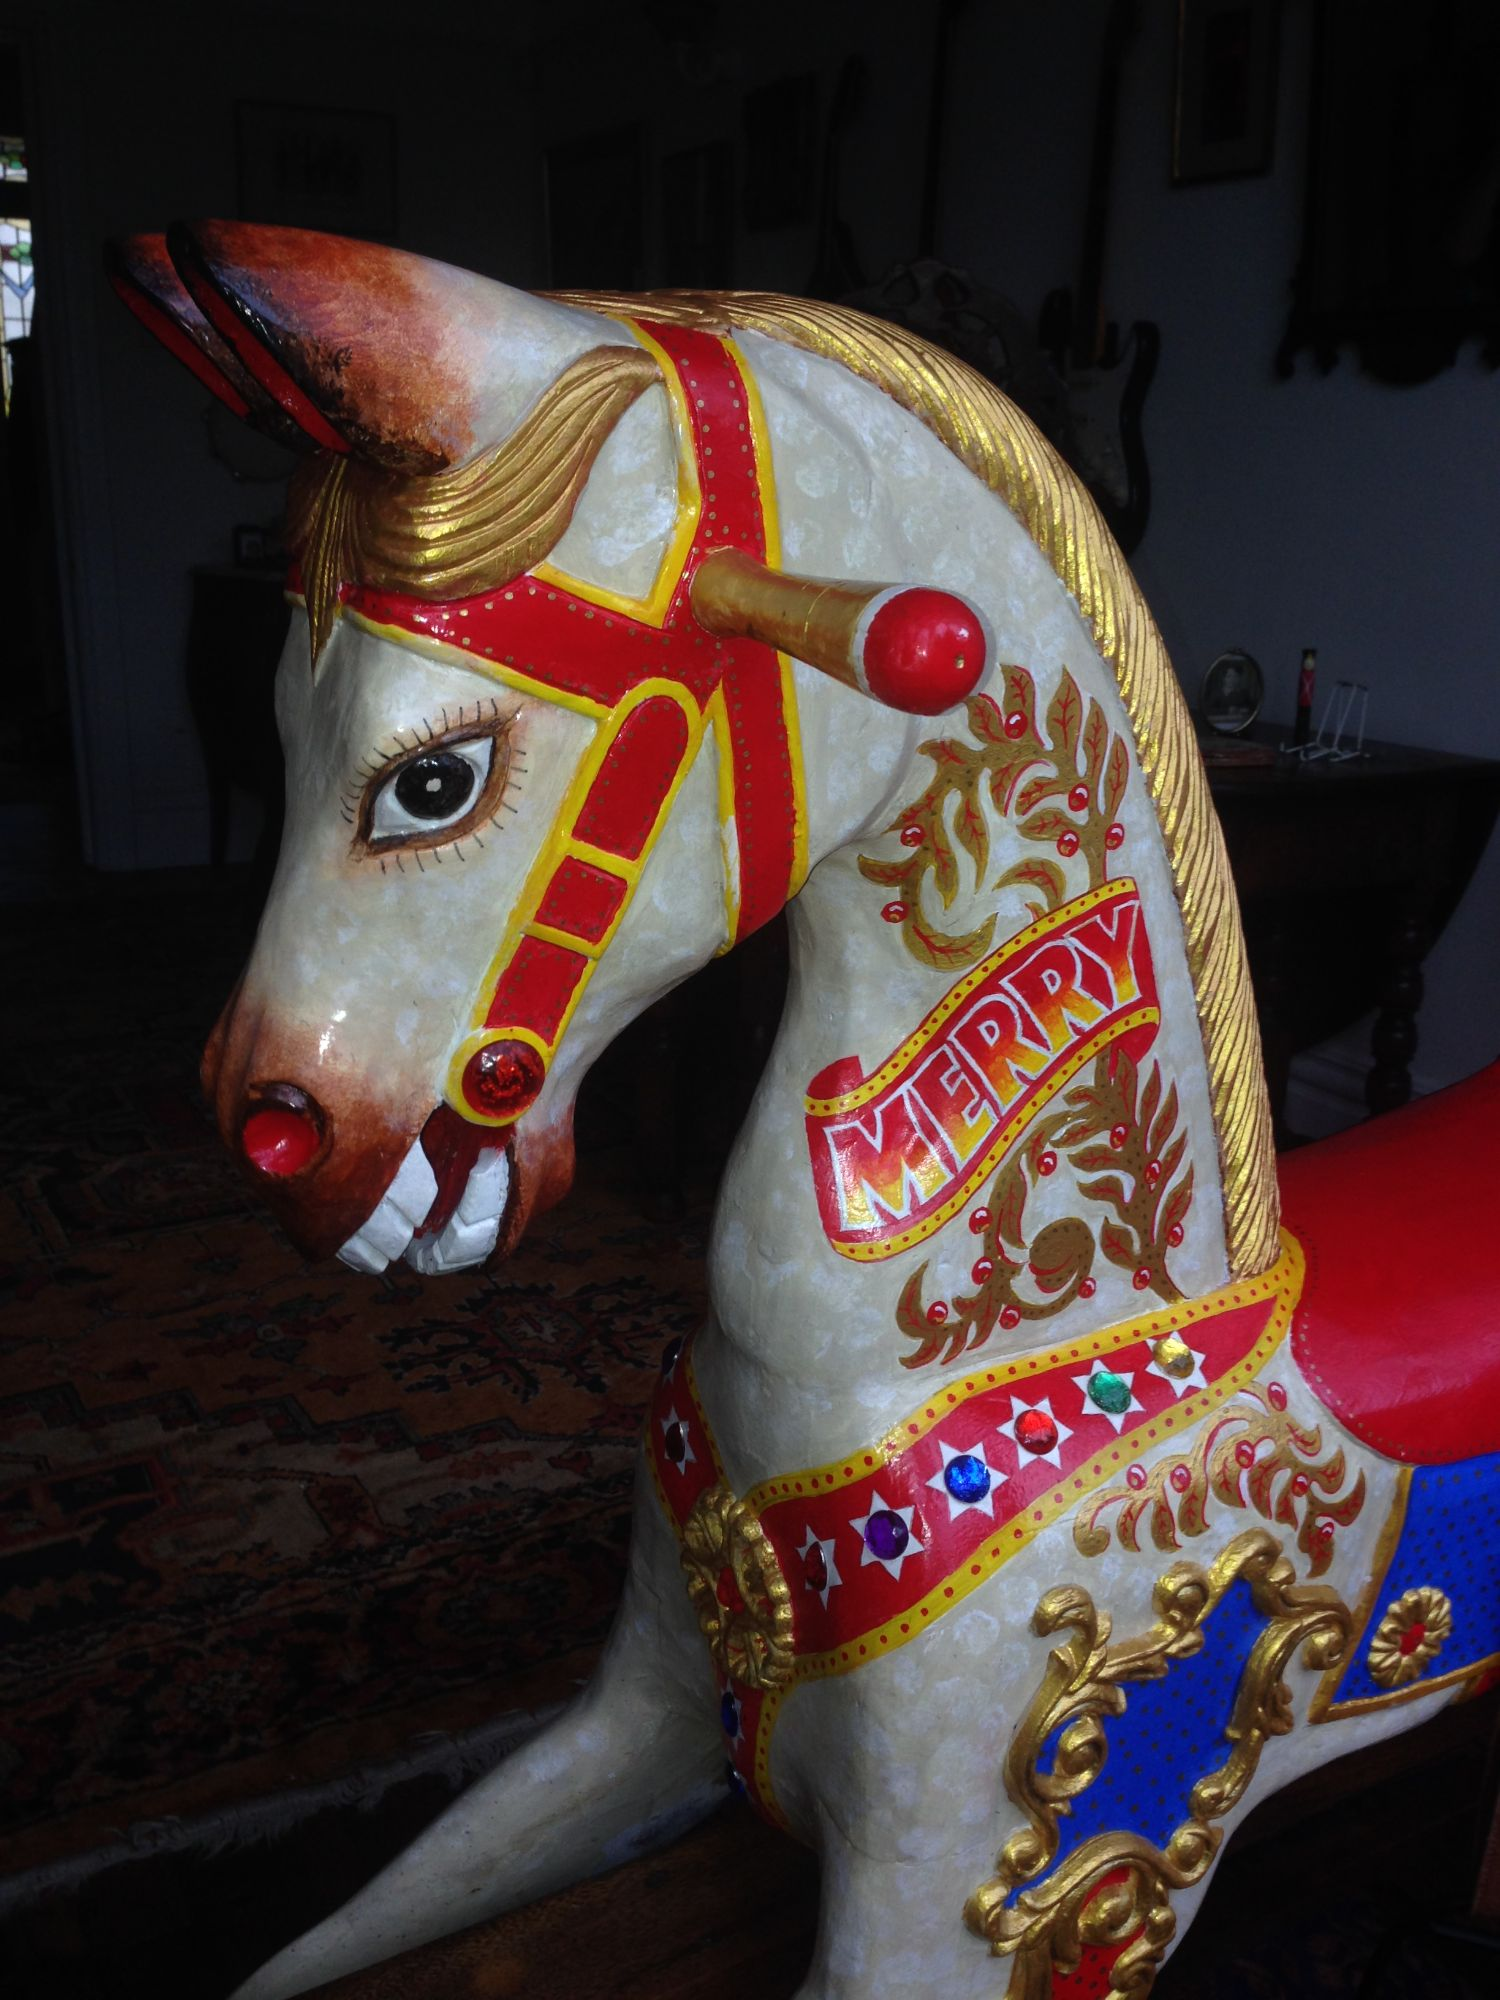 For Sale Unusual Carousel Style Rocking Horse In Good Condition